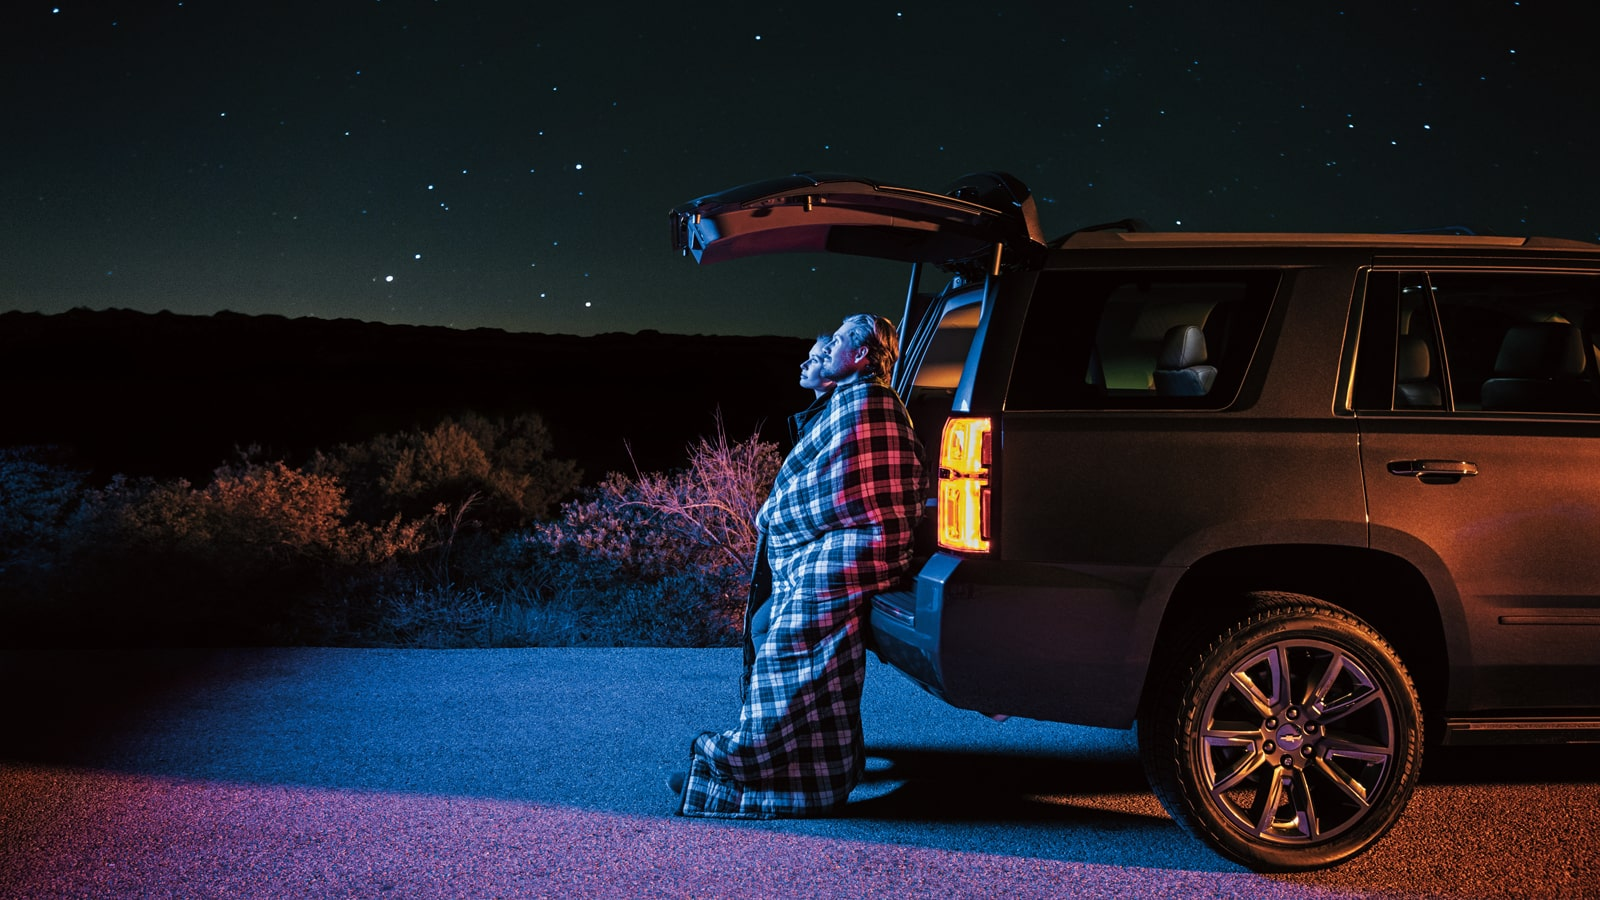 Star Struck - Road Trip in a Tahoe | Chevy New Roads